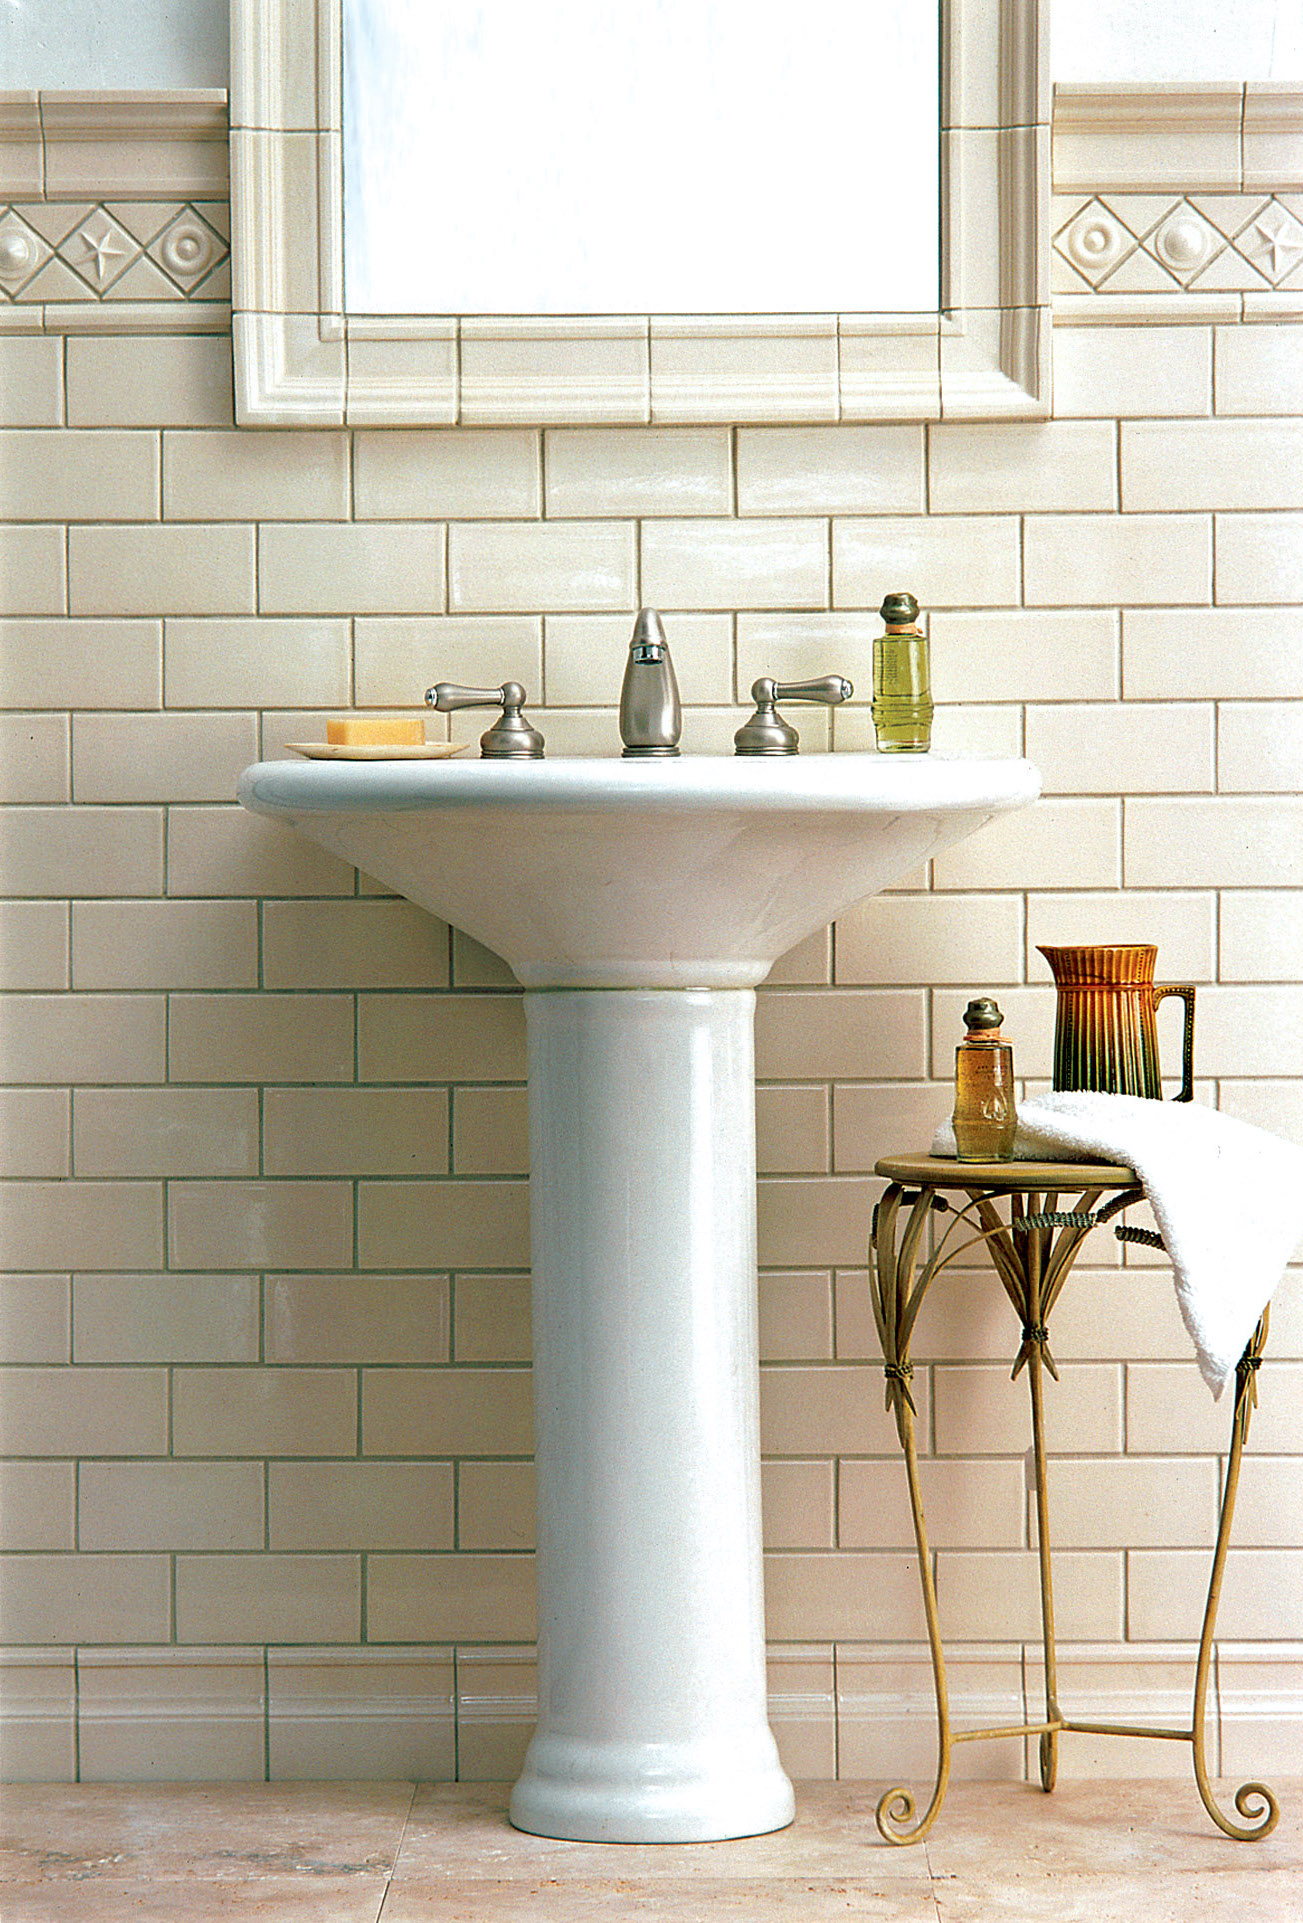 6 Tips for Tile on a Budget